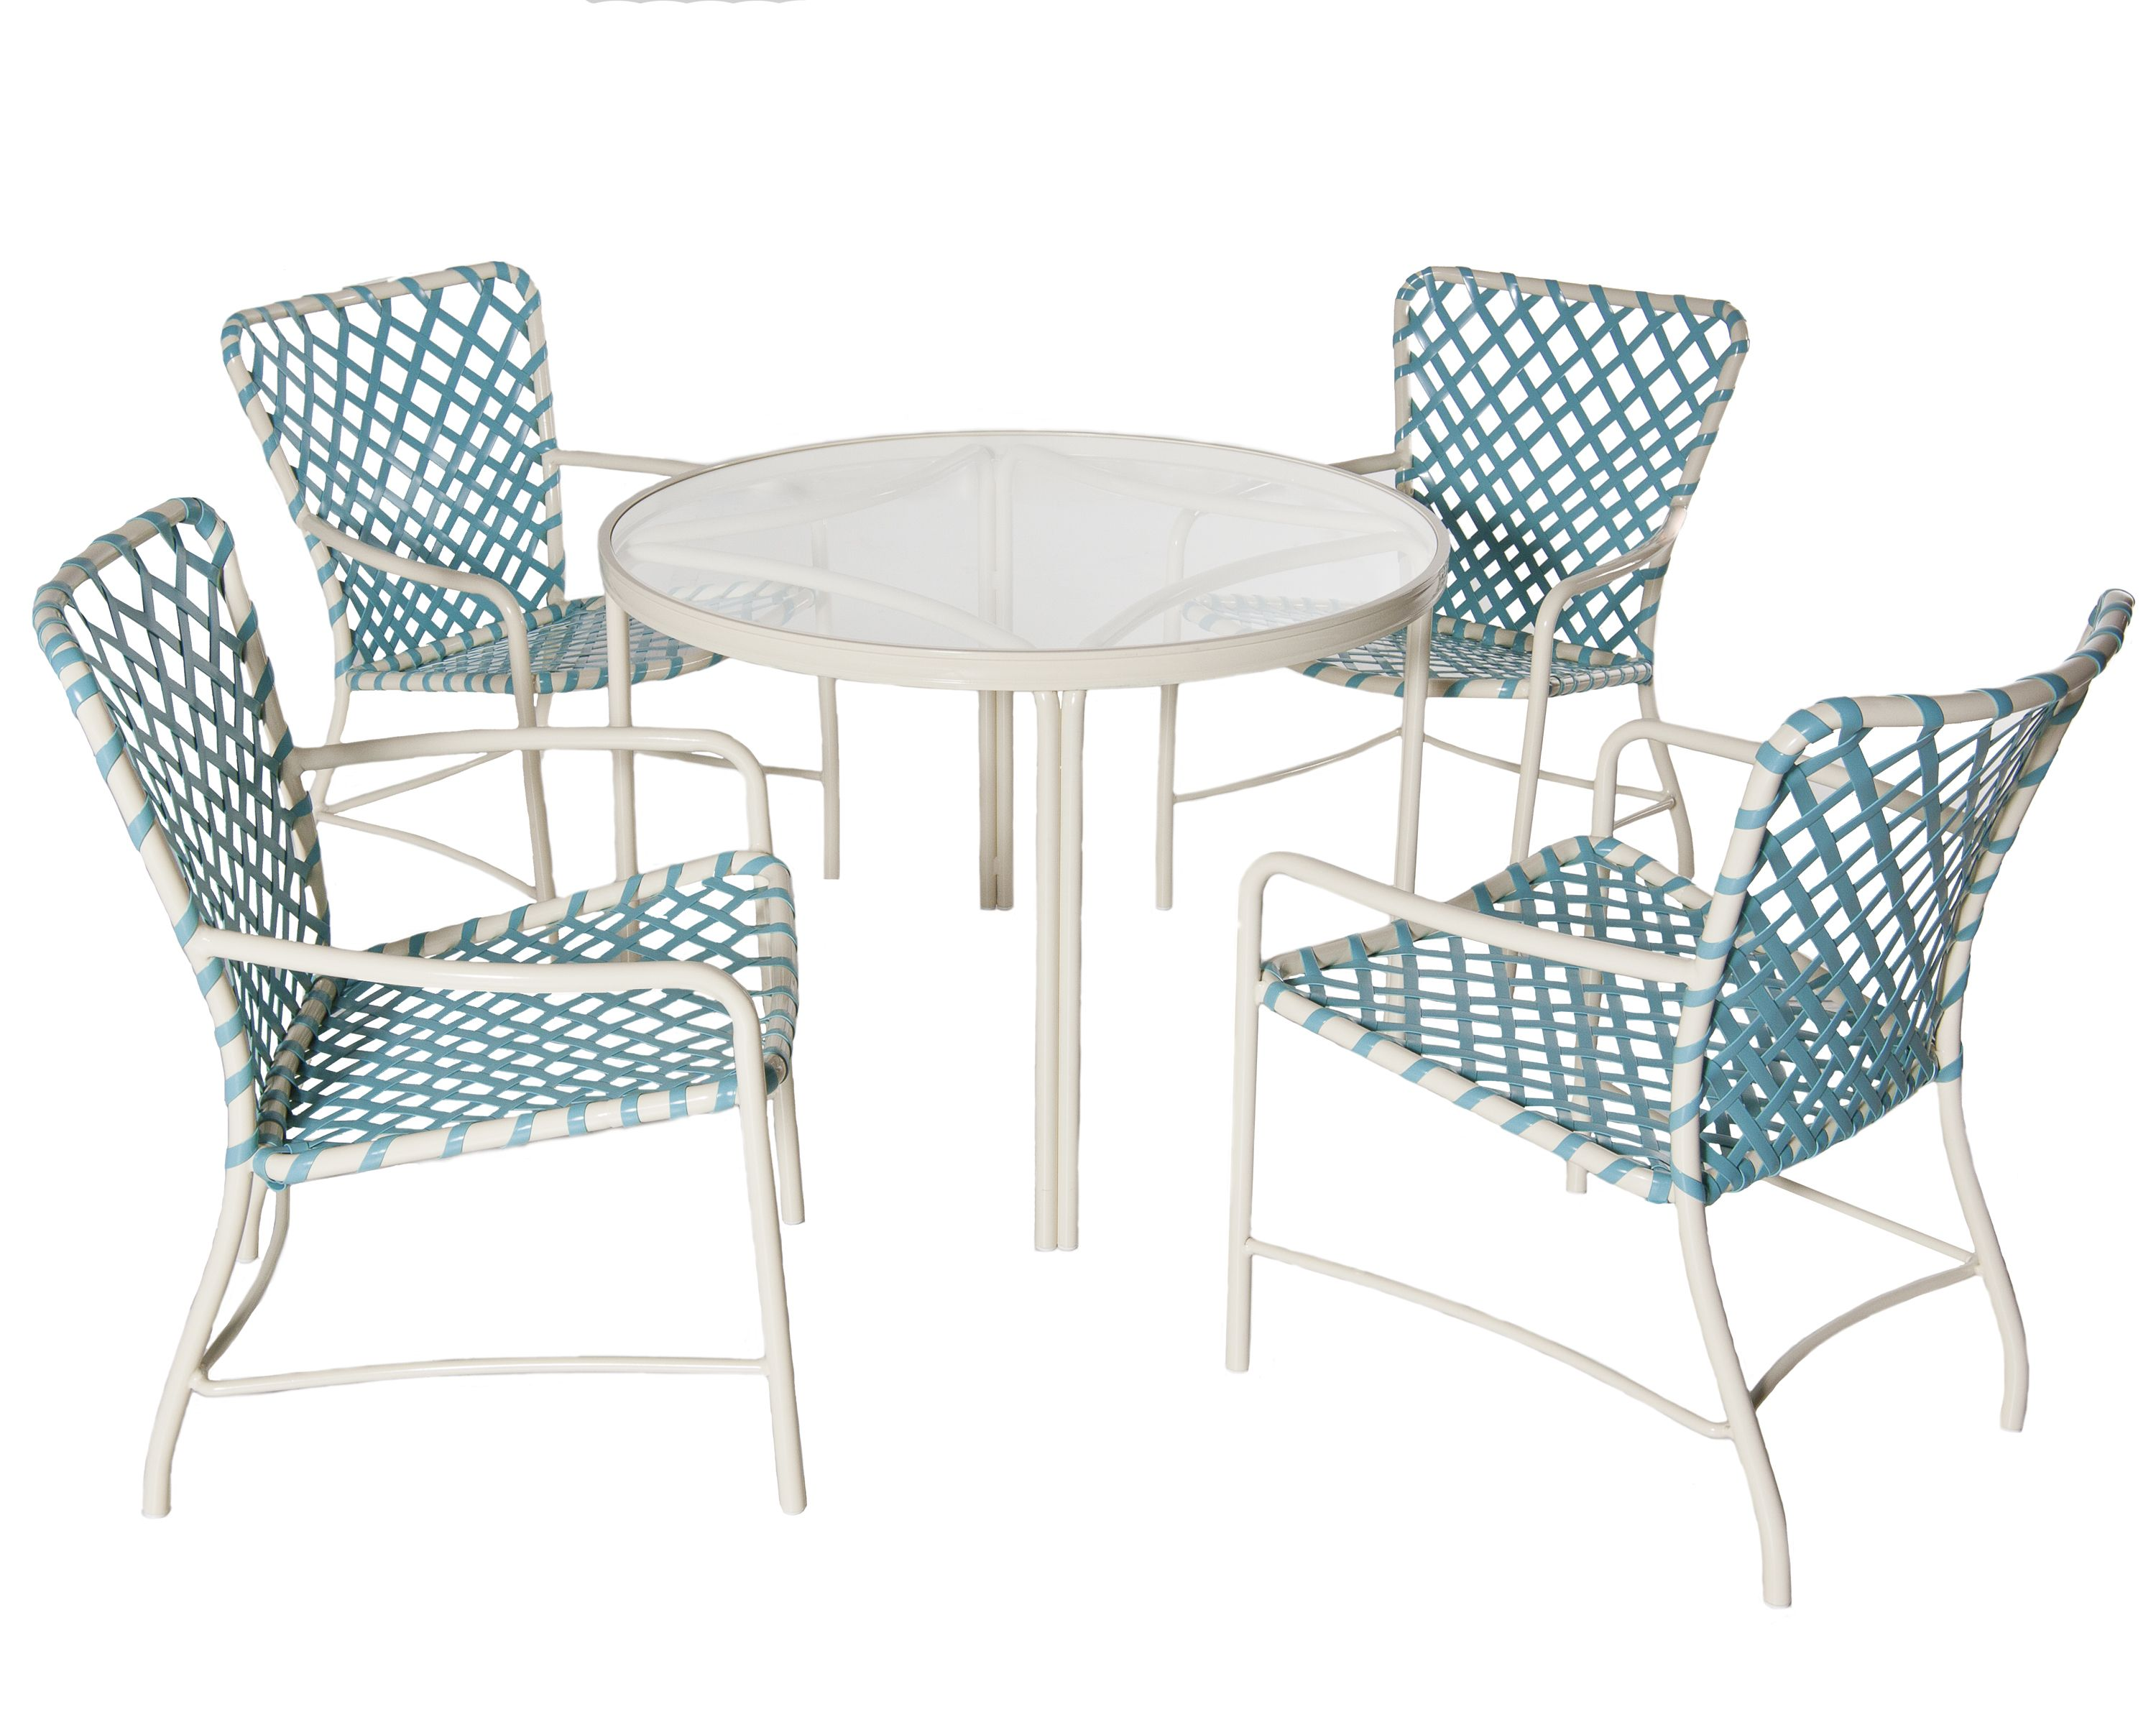 pictures unique of tropitone corsica matmedias patio woven furniture